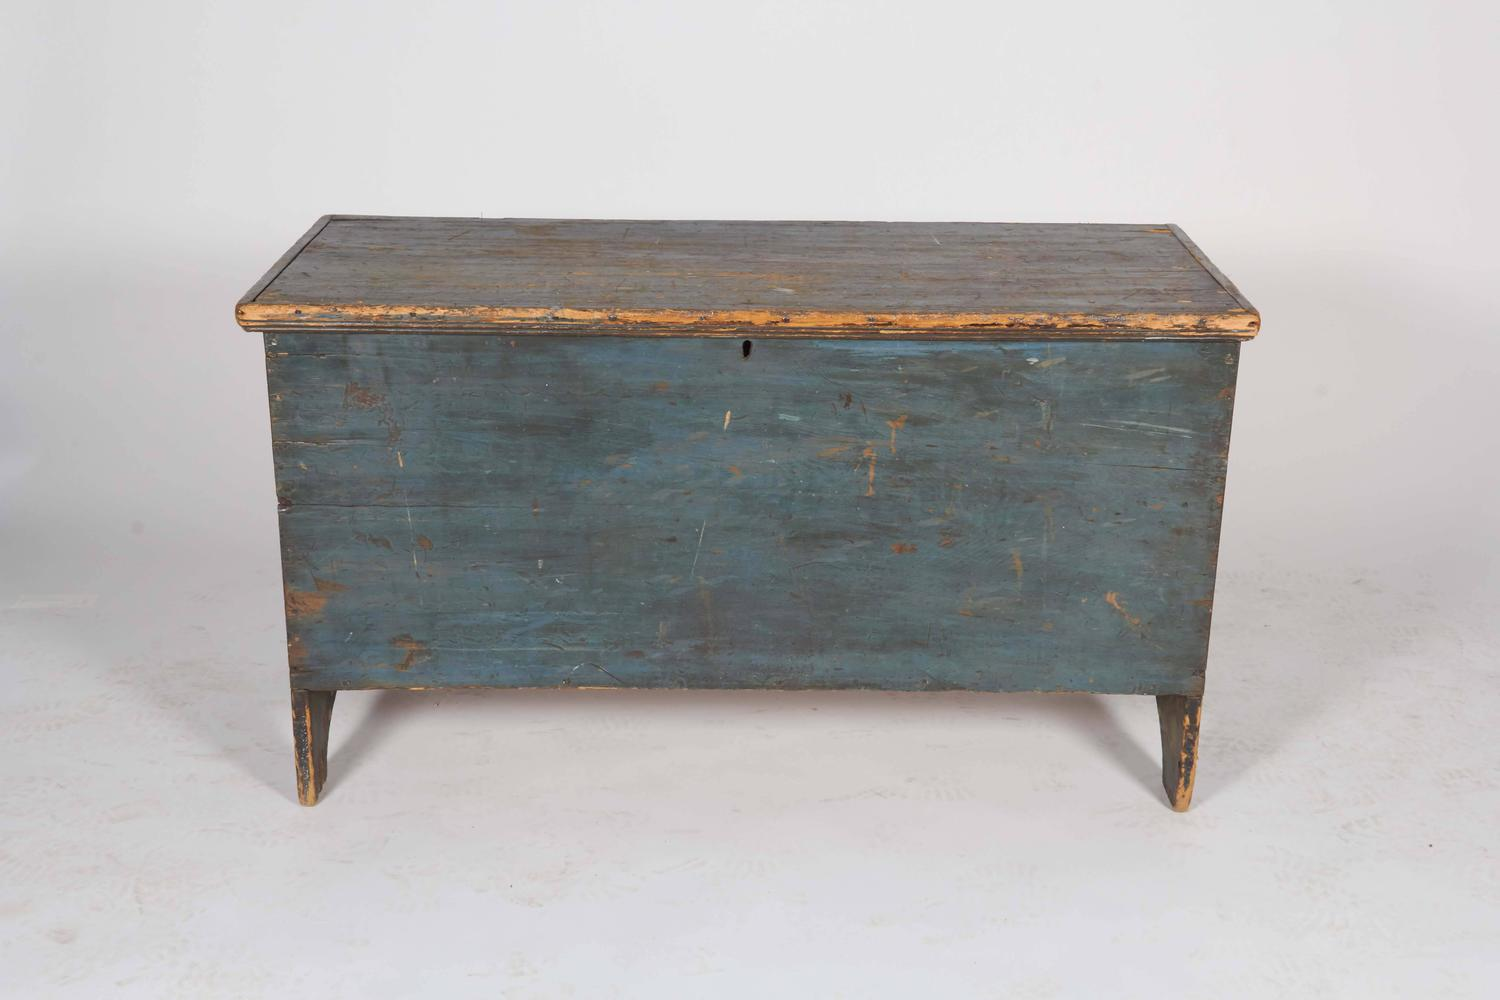 Distressed Blue Painted Wood Trunk For Sale At 1stdibs